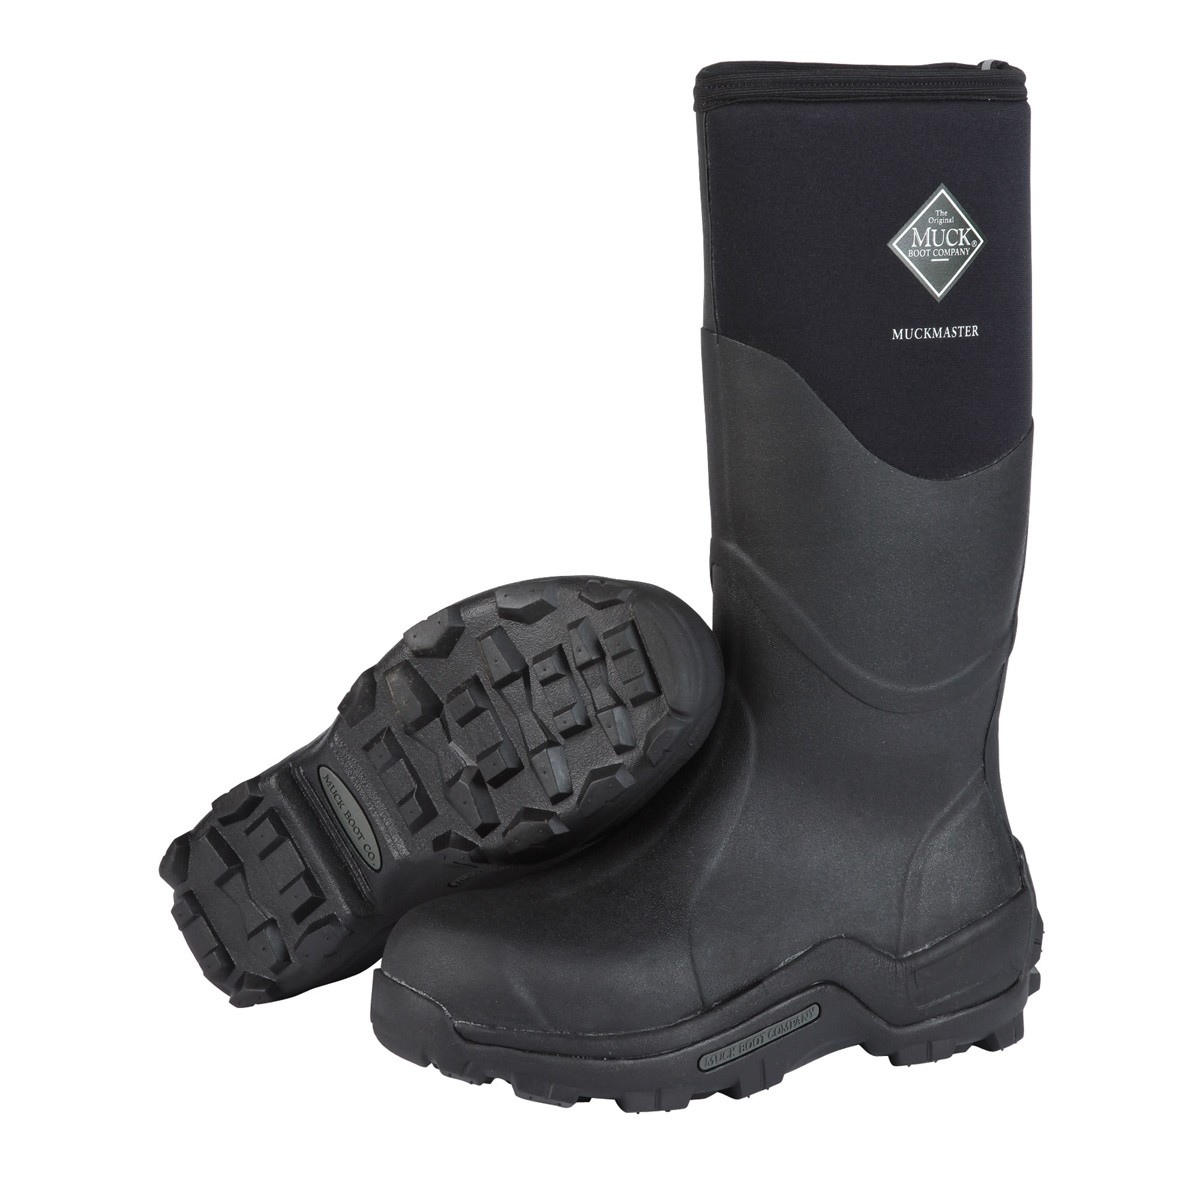 Original Muck Boot Company Muckmaster Mid-Cut Boot - Planktown ...